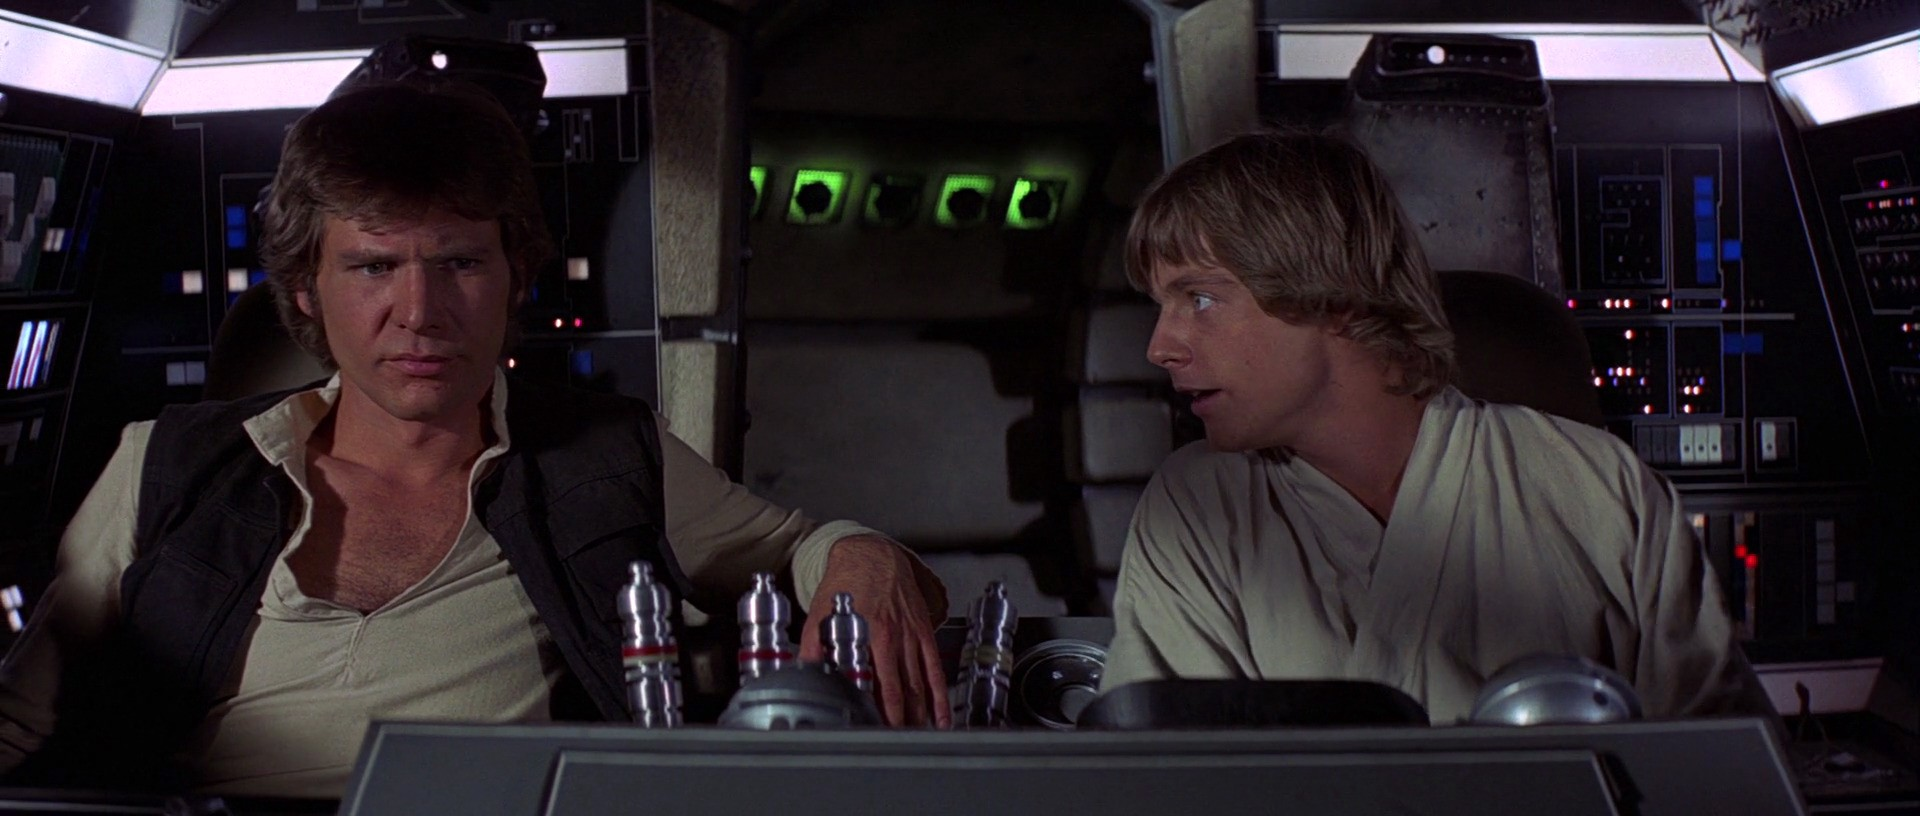 Han and Luke in the Millenium Falcon